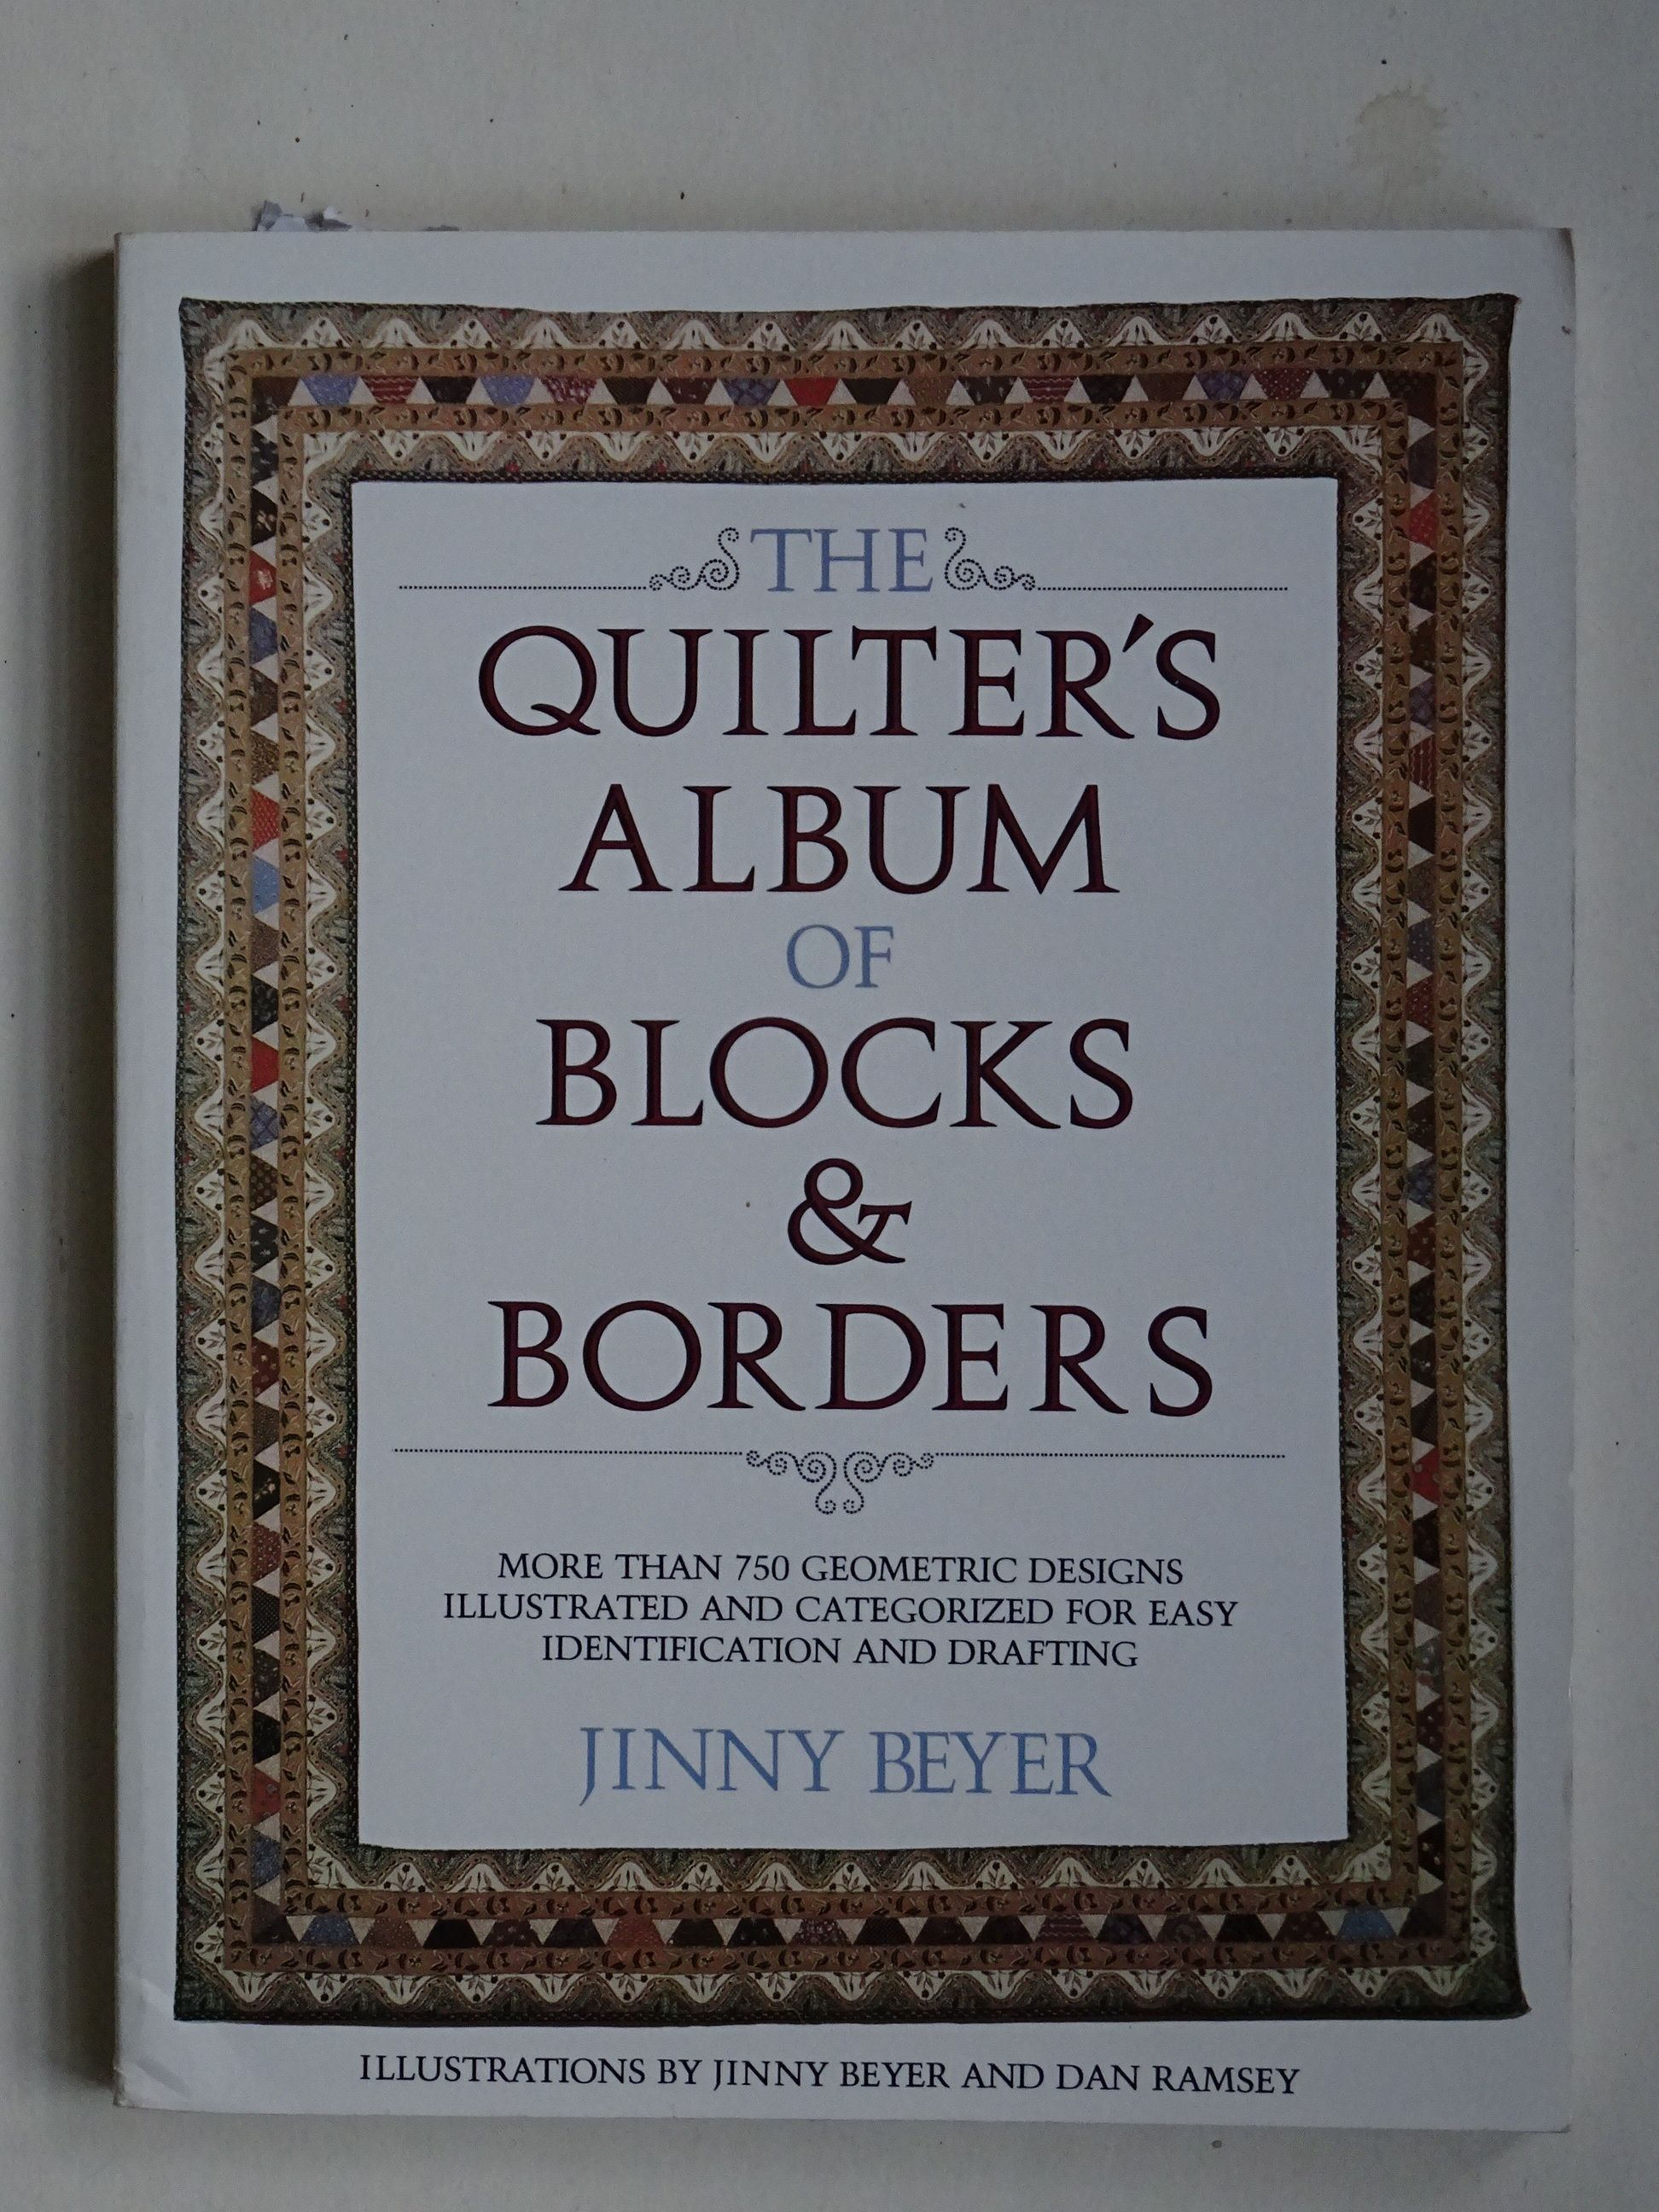 Beyer, Jinny – The Quilter's Album of Blocks & Borders